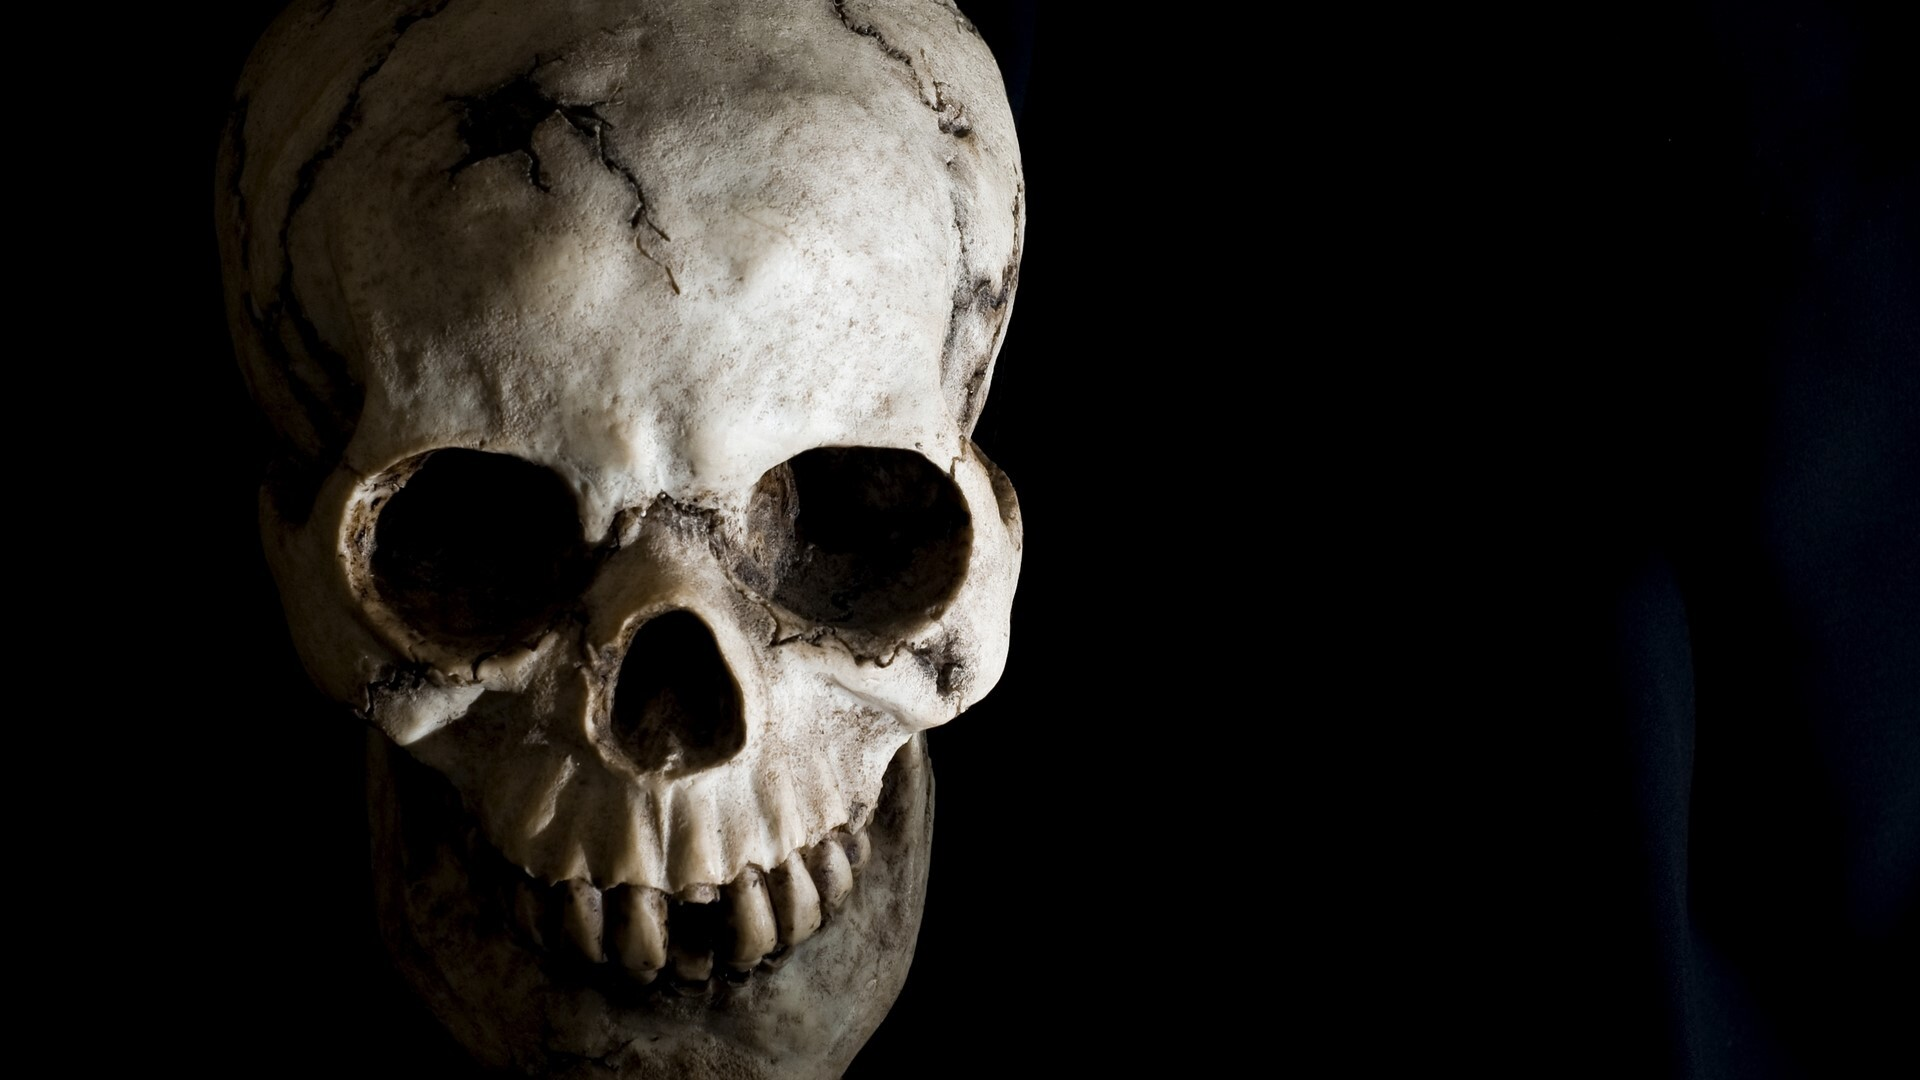 Skull horror hd desktop background wallpaper hd wallpapers - Devil skull wallpaper ...